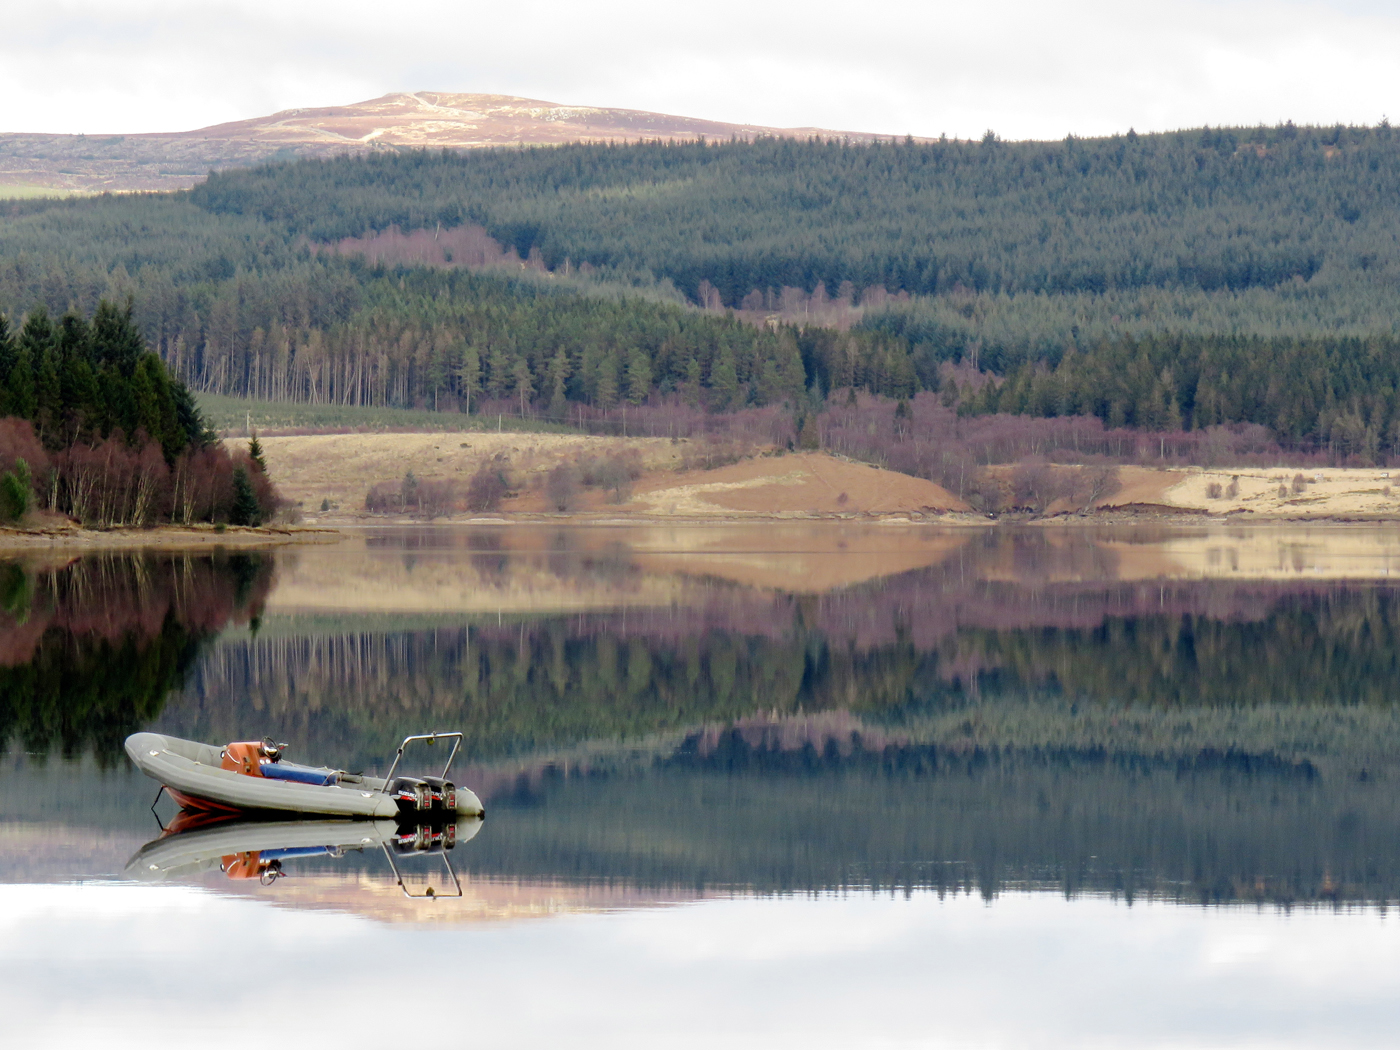 REFLECTING ON THE LOCH by Colin Botwright